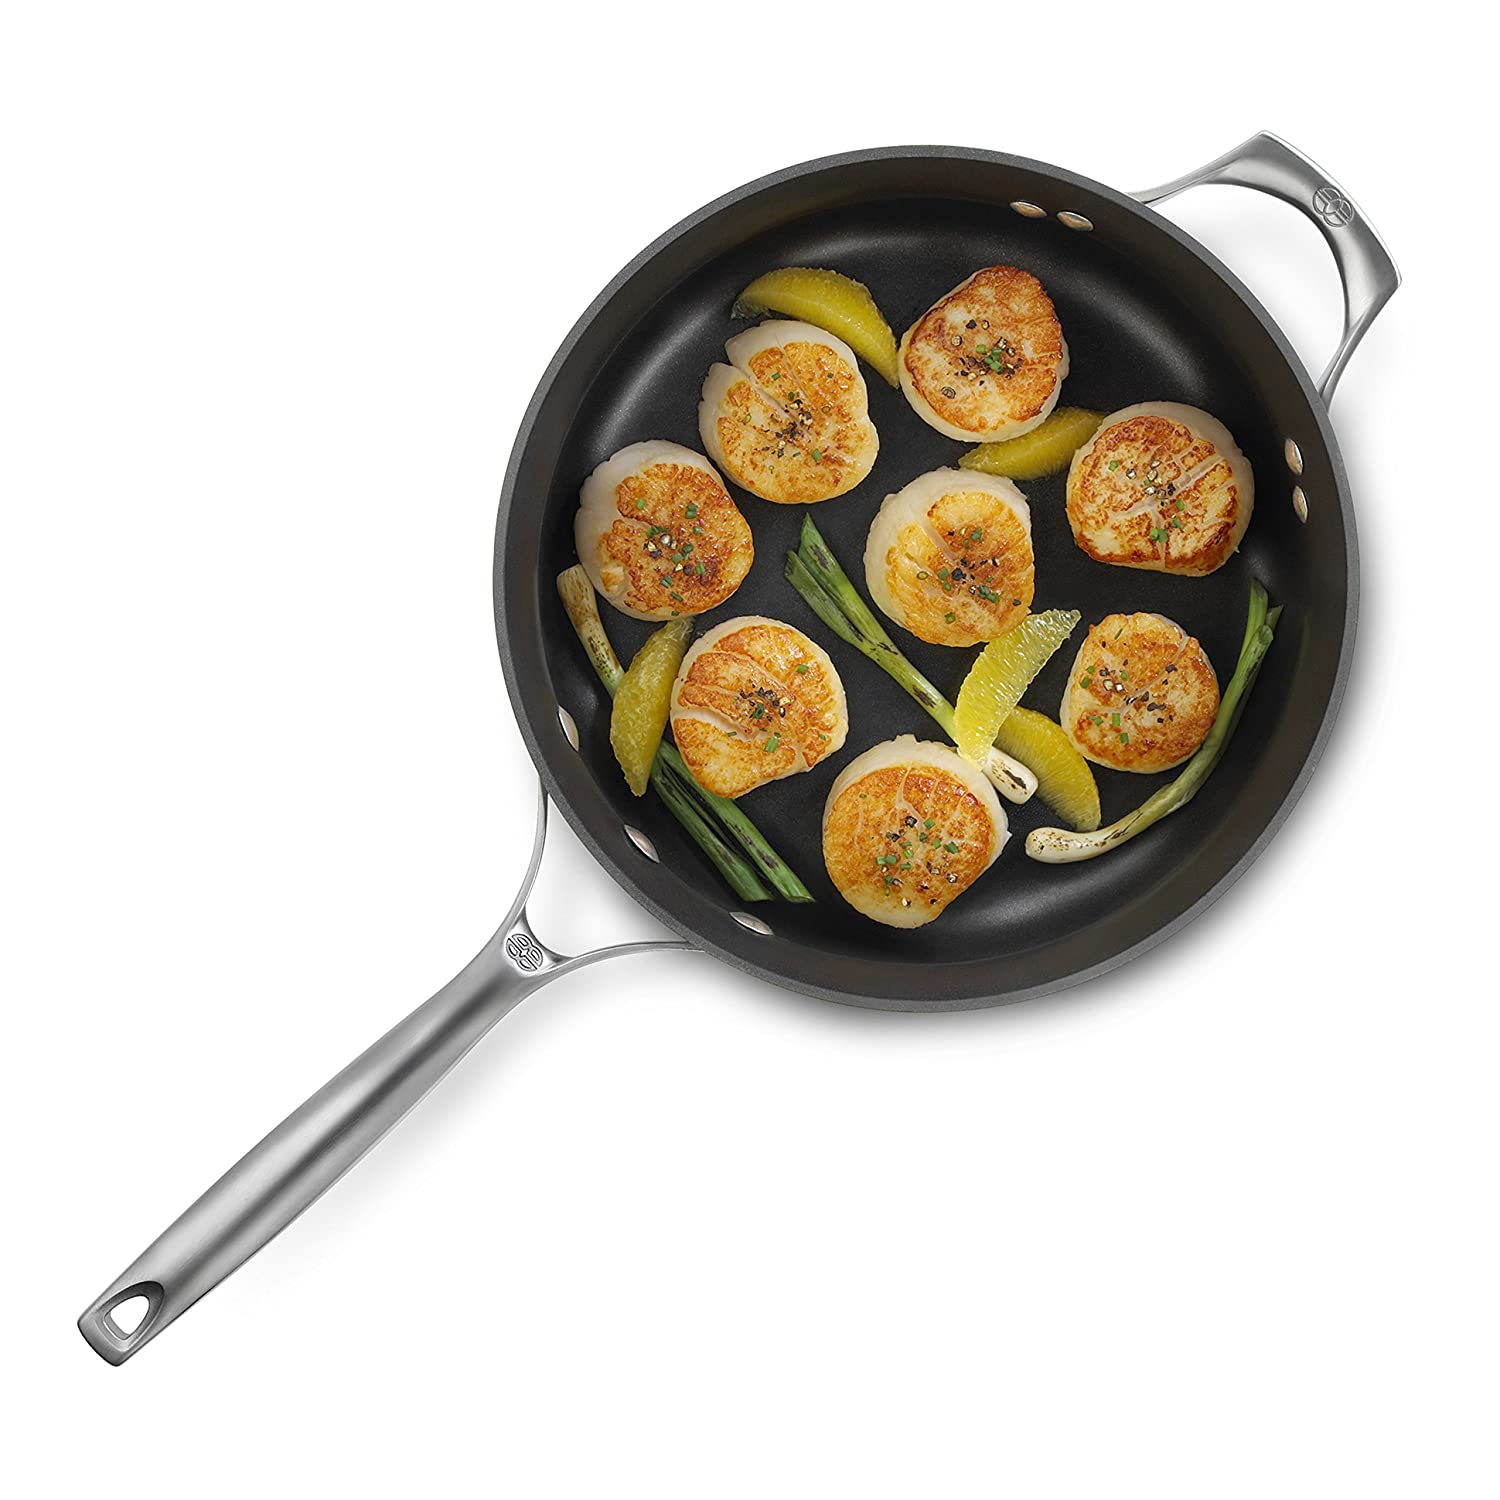 Cookware gt see more select by calphalon ceramic nonstick 8 inch an - Amazon Com Calphalon Unison Nonstick 3 Qt Saute Pan With Cover Saute Pans Kitchen Dining